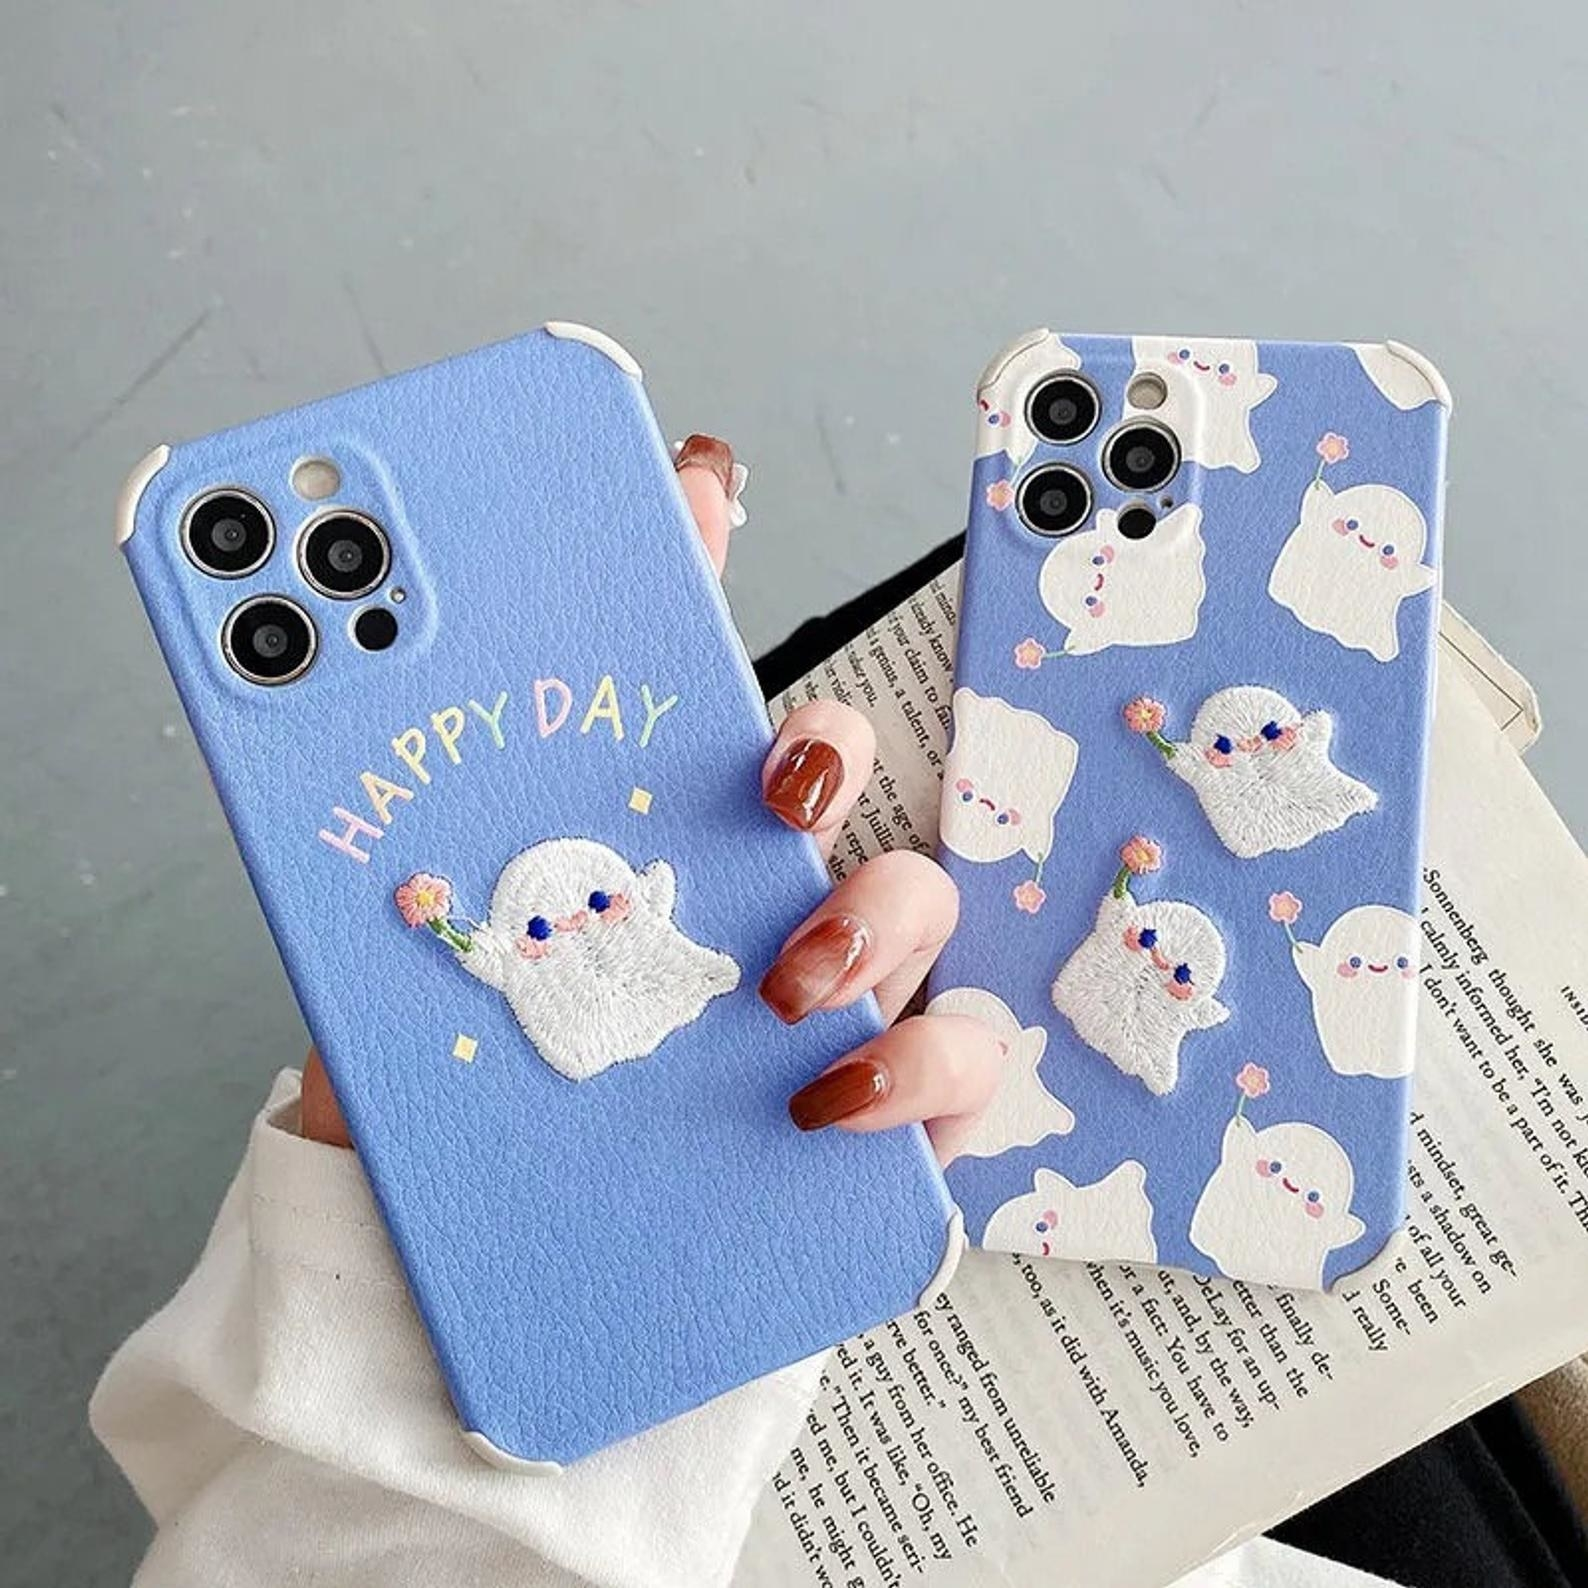 two blue phone cases with little ghosts holding flowers embroidered on them